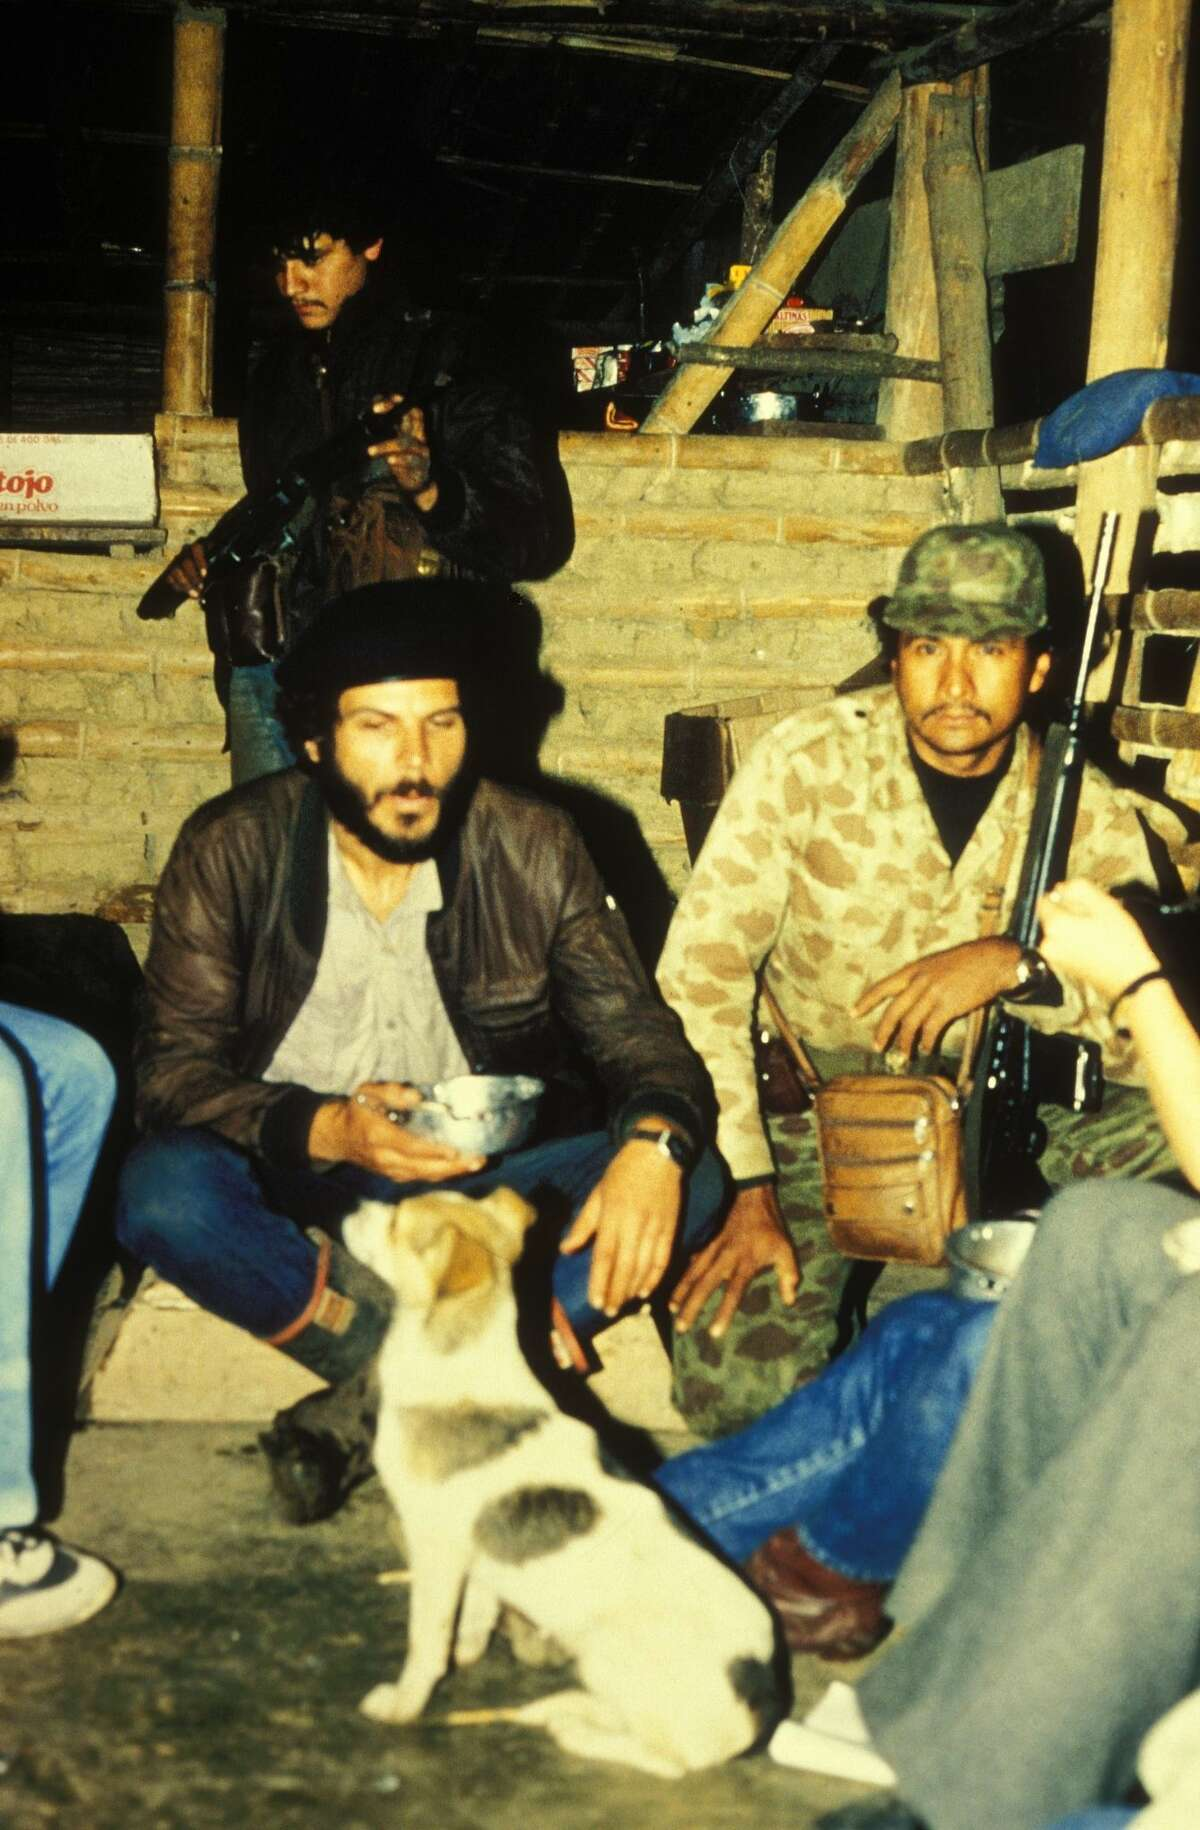 Sometime in 1981 - 1982: Following attacks on their properties and kidnappings of their relatives, a coalition of drug cartels, including the Cali and Medellin, formed a paramilitary group to target the Colombia's M-19 rebel group and other anti-communist affiliates, Muerte a Secuestradores.